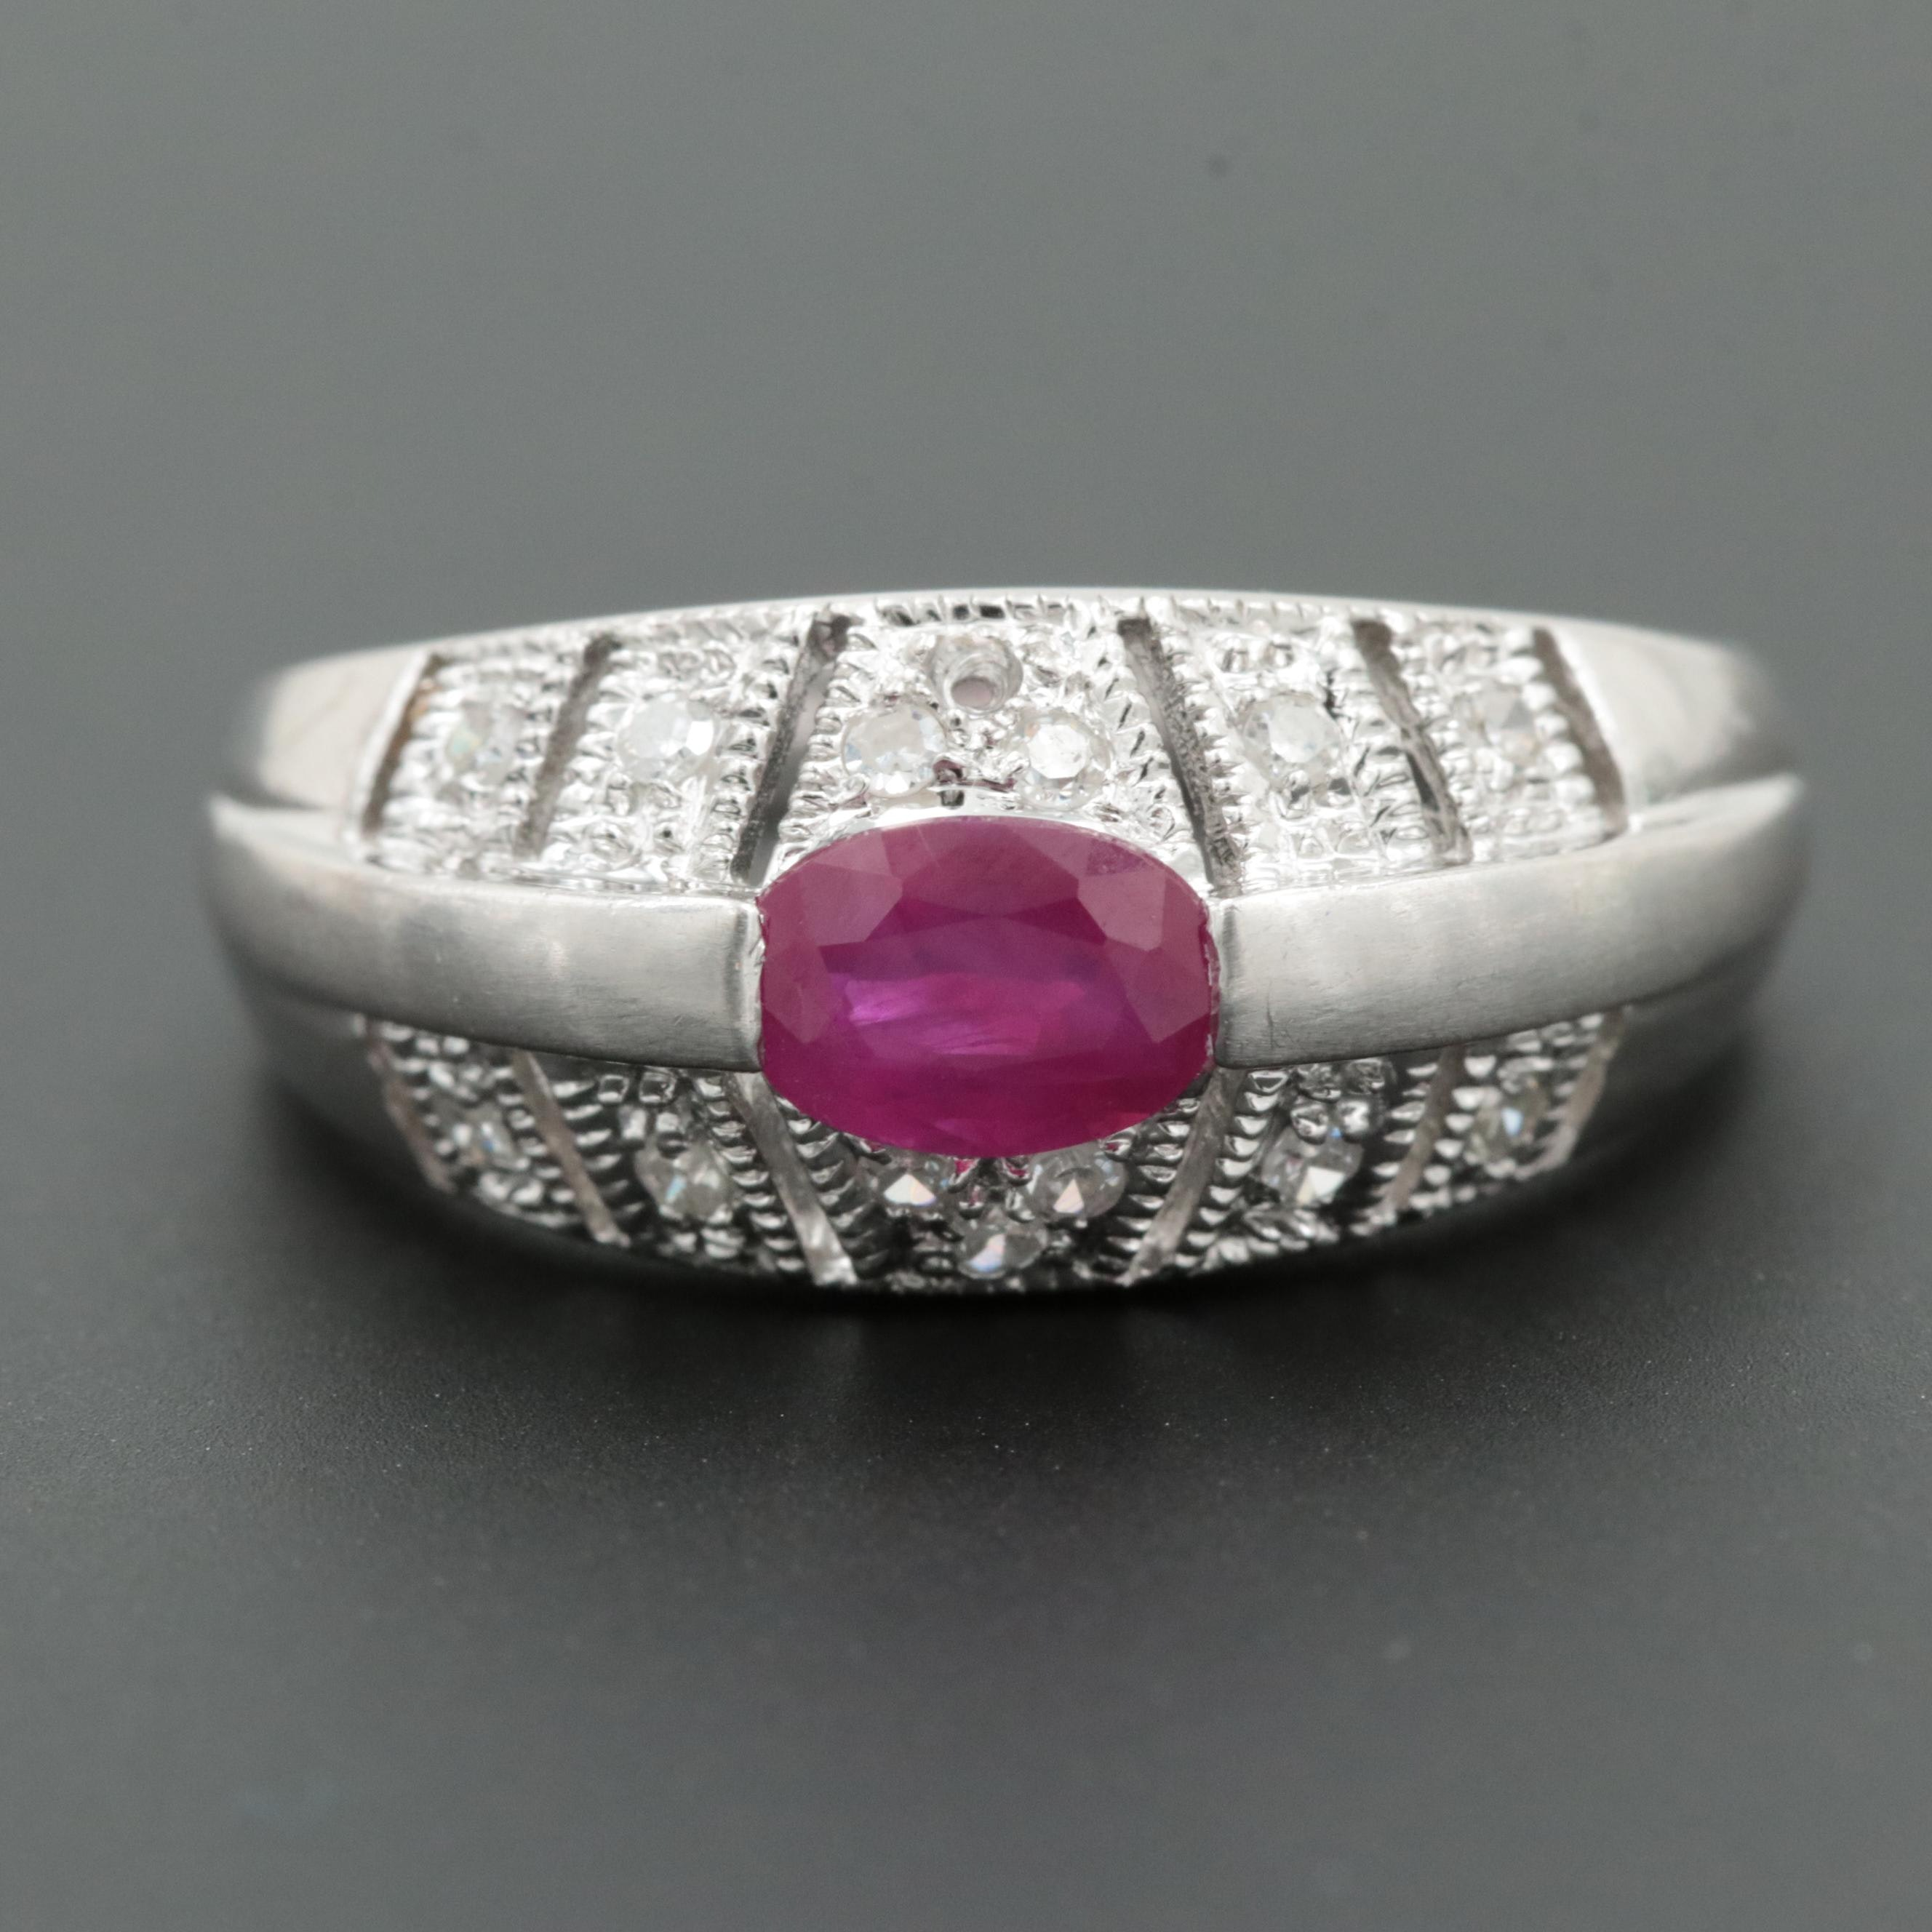 Vintage 14K White Gold Ruby and Diamond Openwork Ring with Milgrain Detail